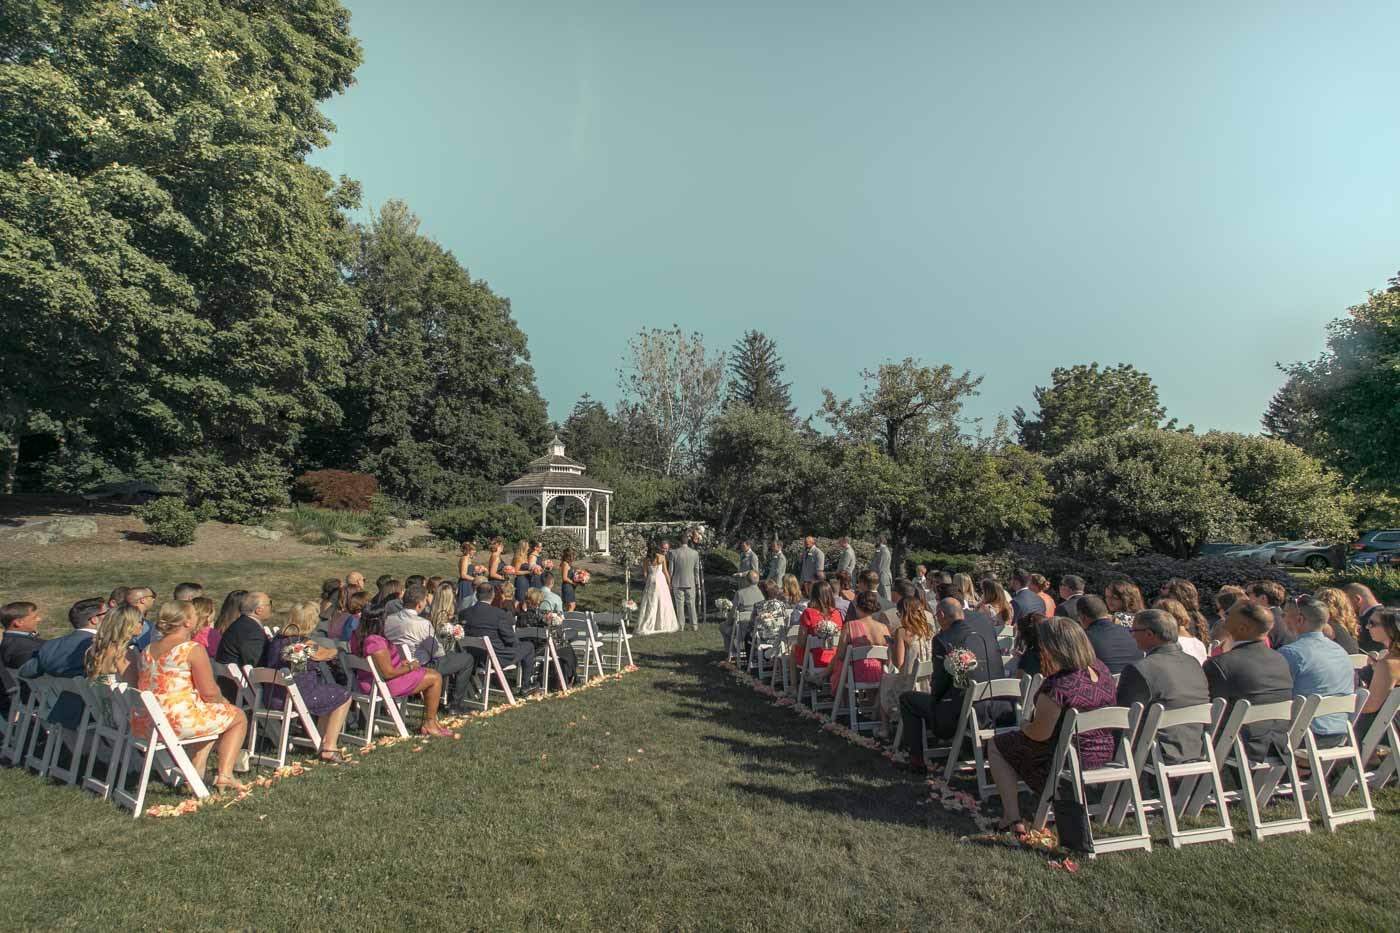 summer-ceremony-guests-seated-on-lawn-gazebo-in-background